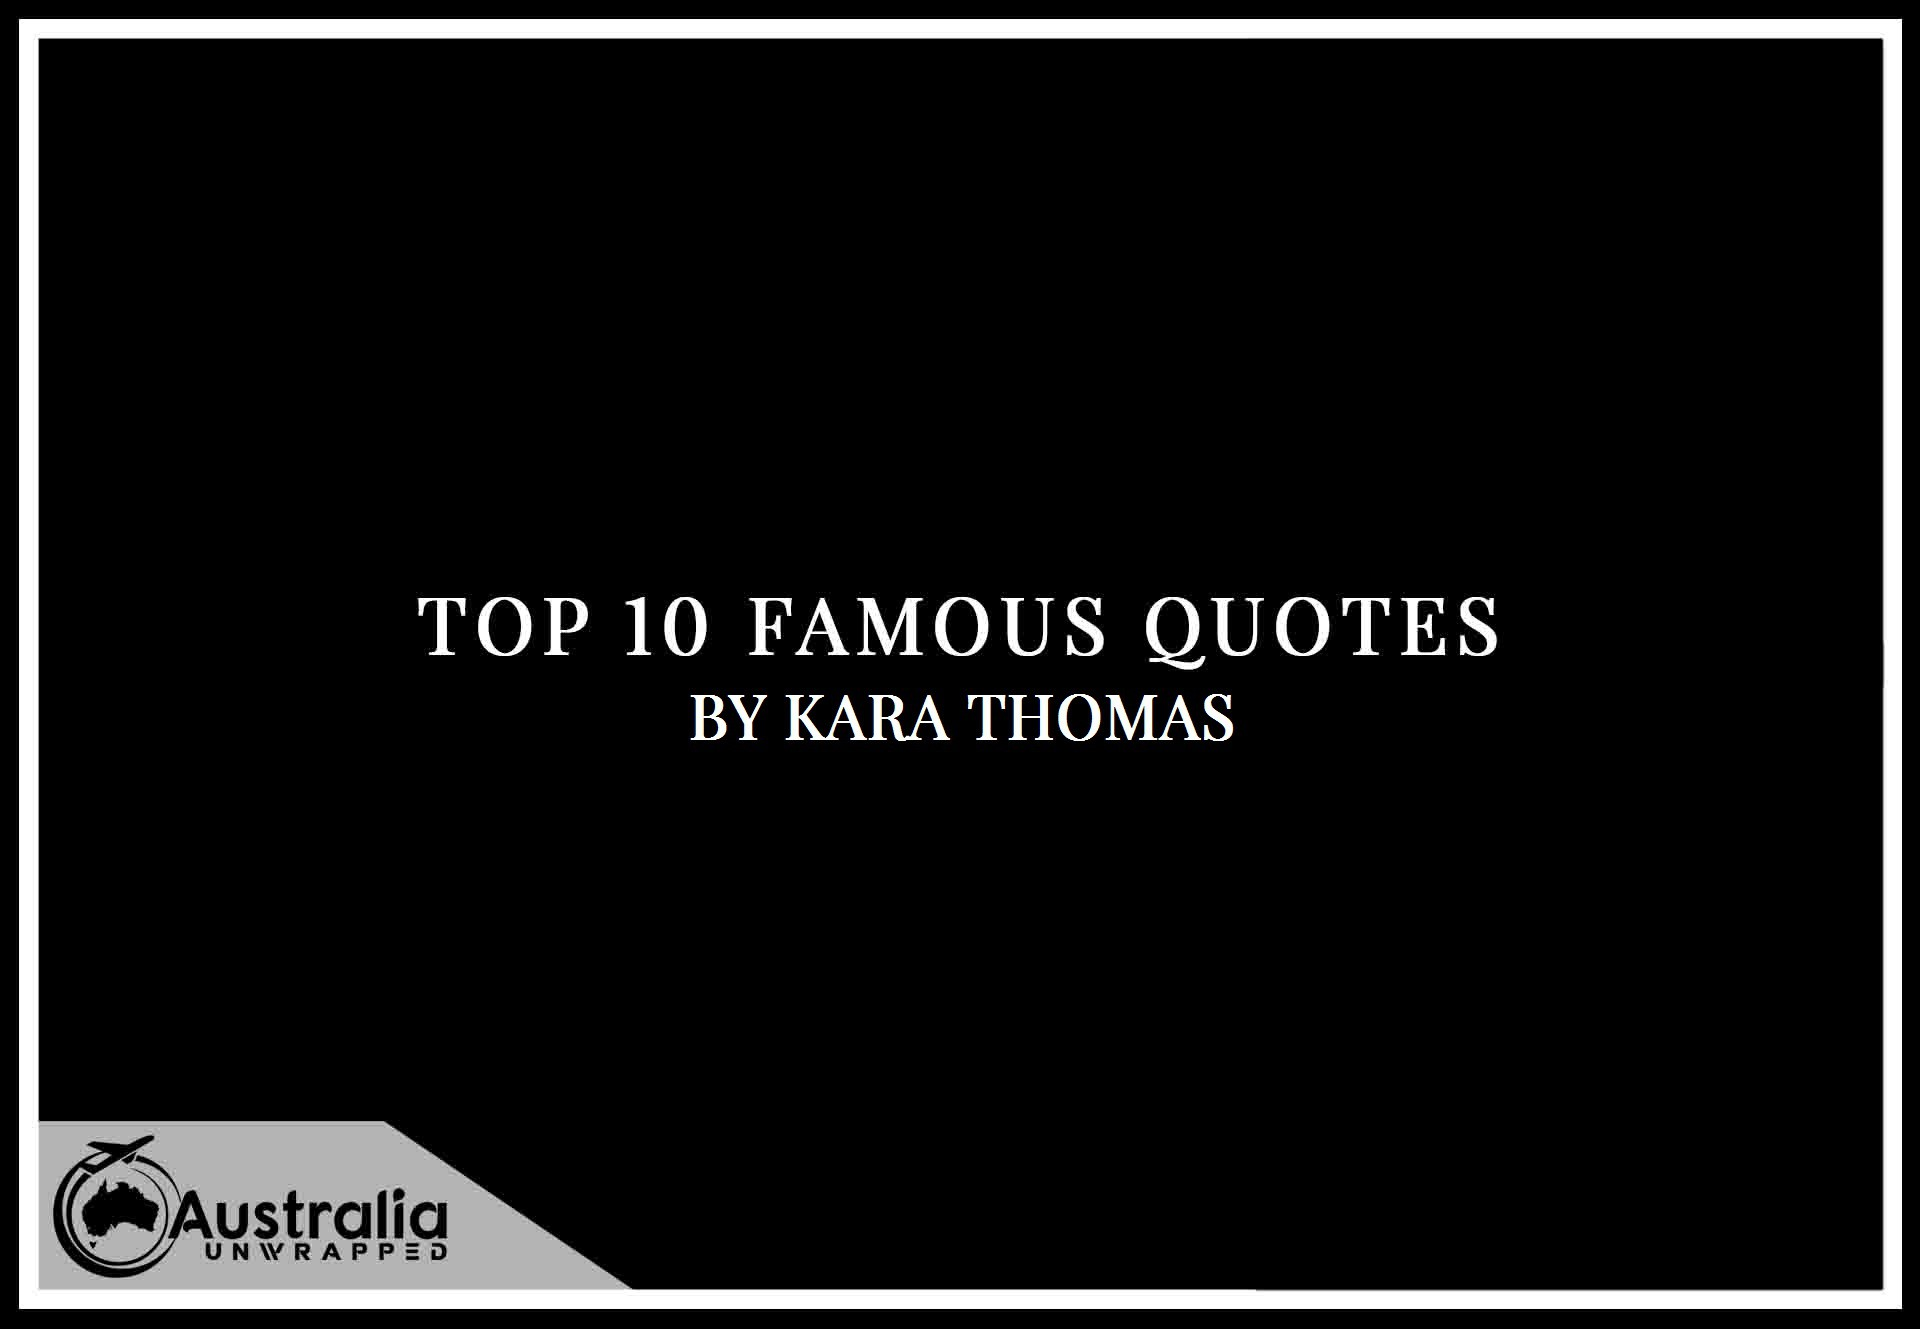 Kara Thomas's Top 10 Popular and Famous Quotes